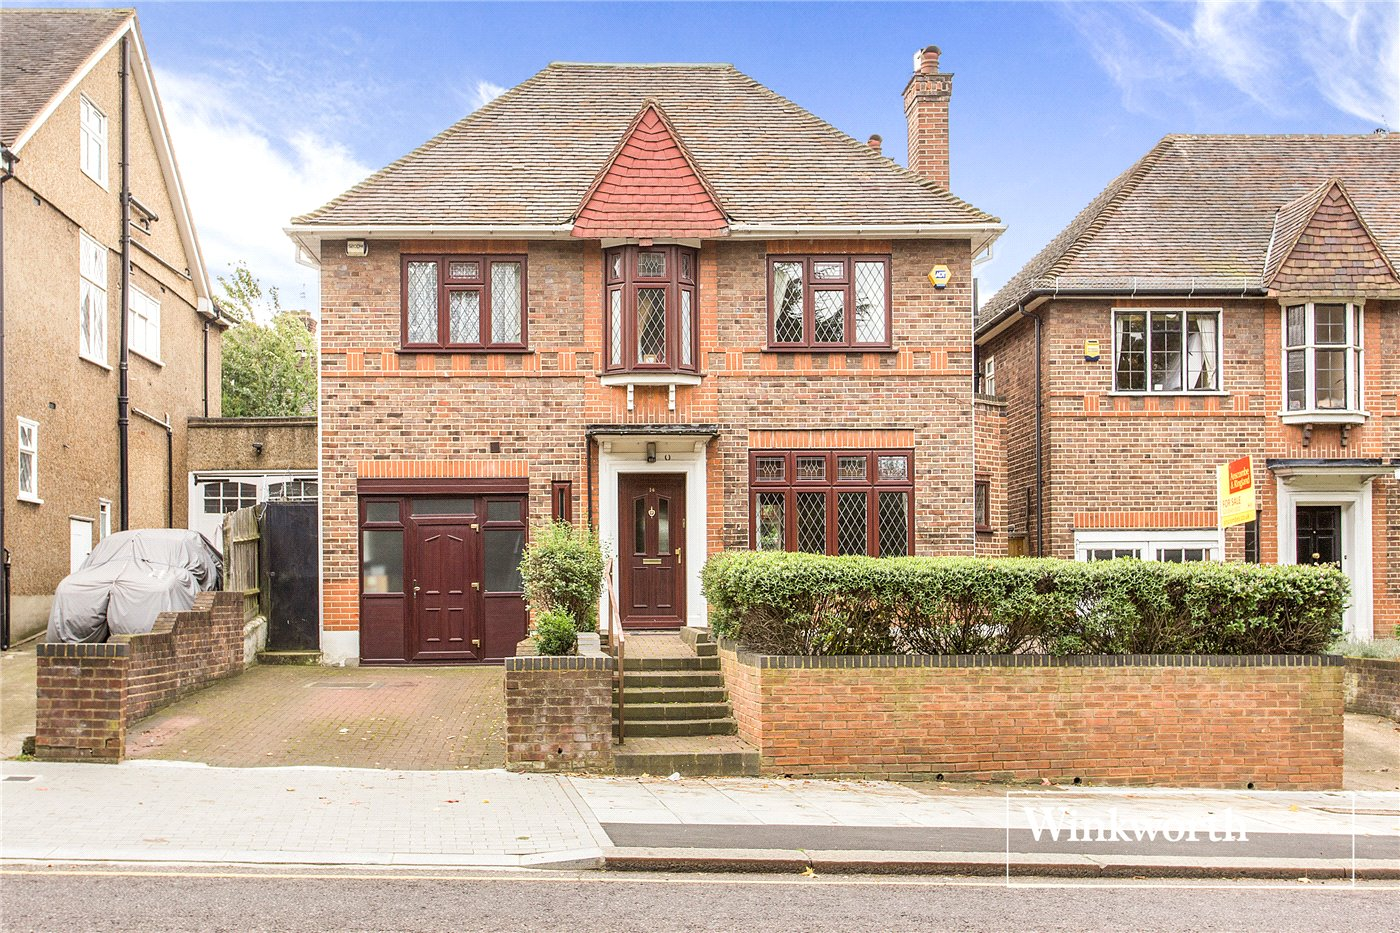 4 Bedrooms Detached House for sale in East End Road, Finchley, London, N3